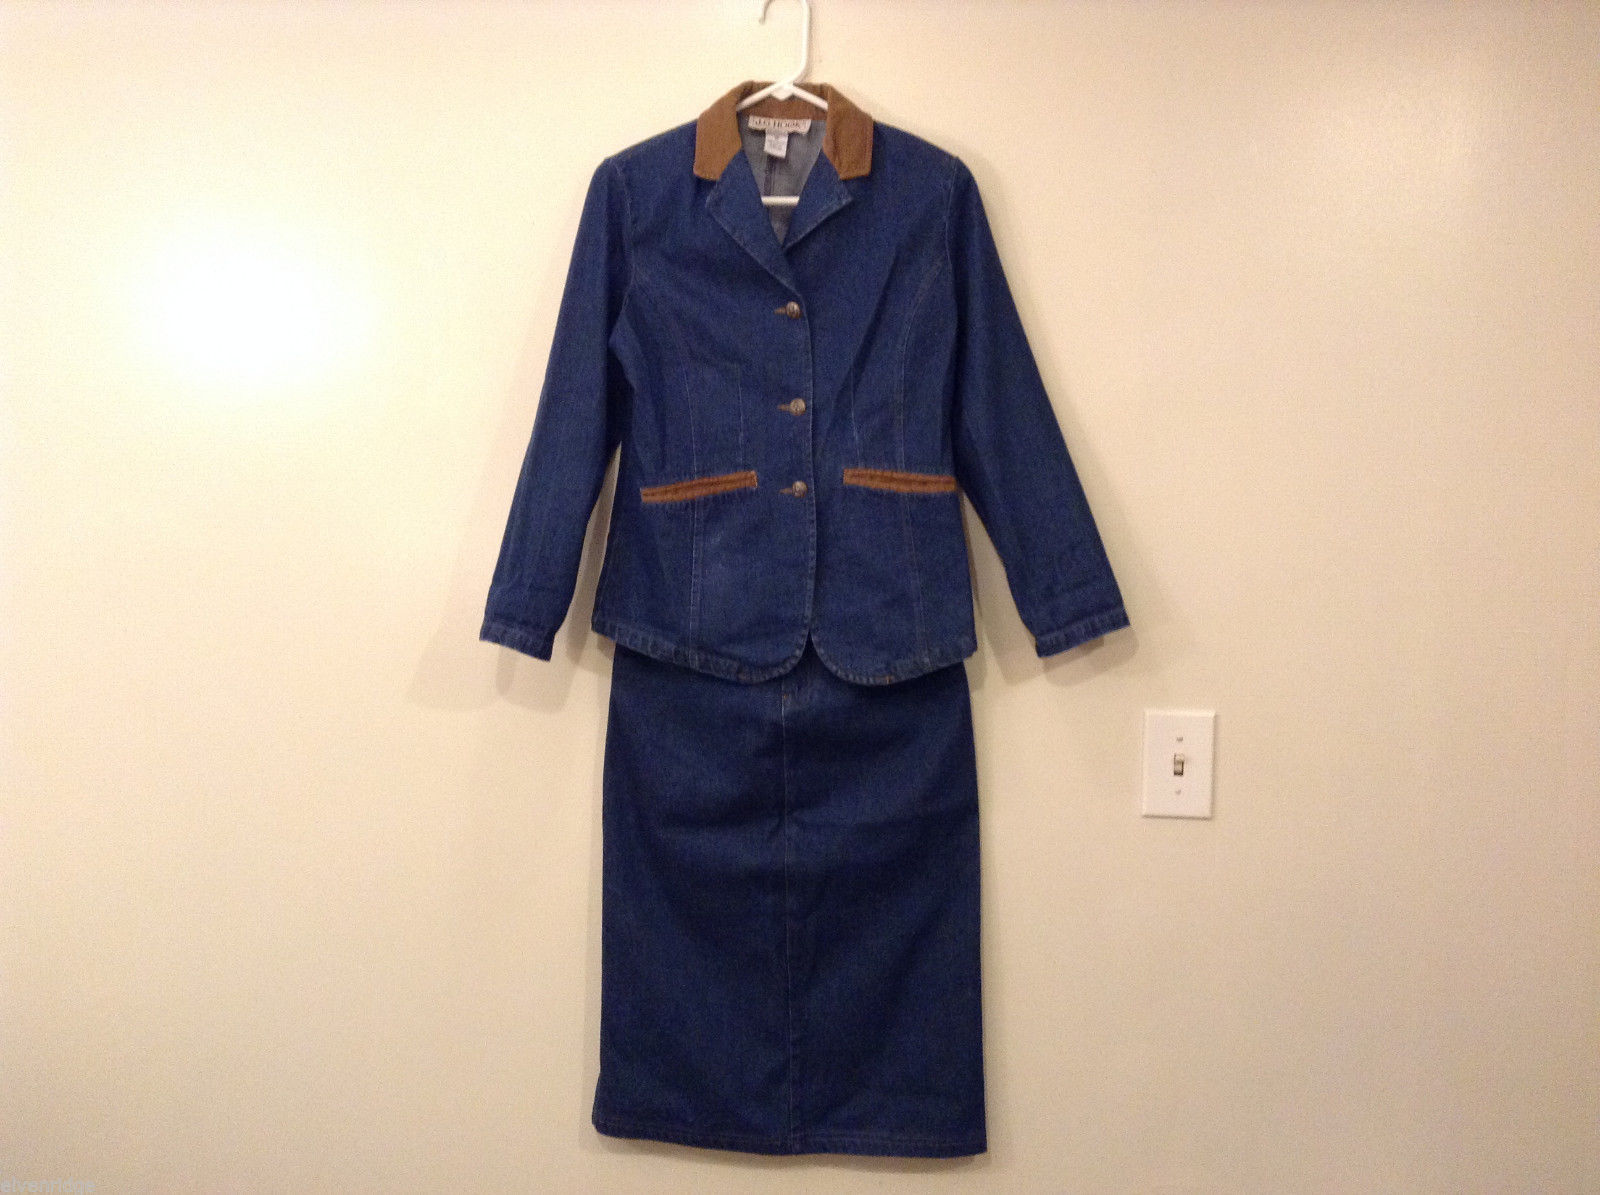 J.G. Hook Women's Size 2P Jacket & Skirt Set Retro 70s Style Jean Denim Corduroy